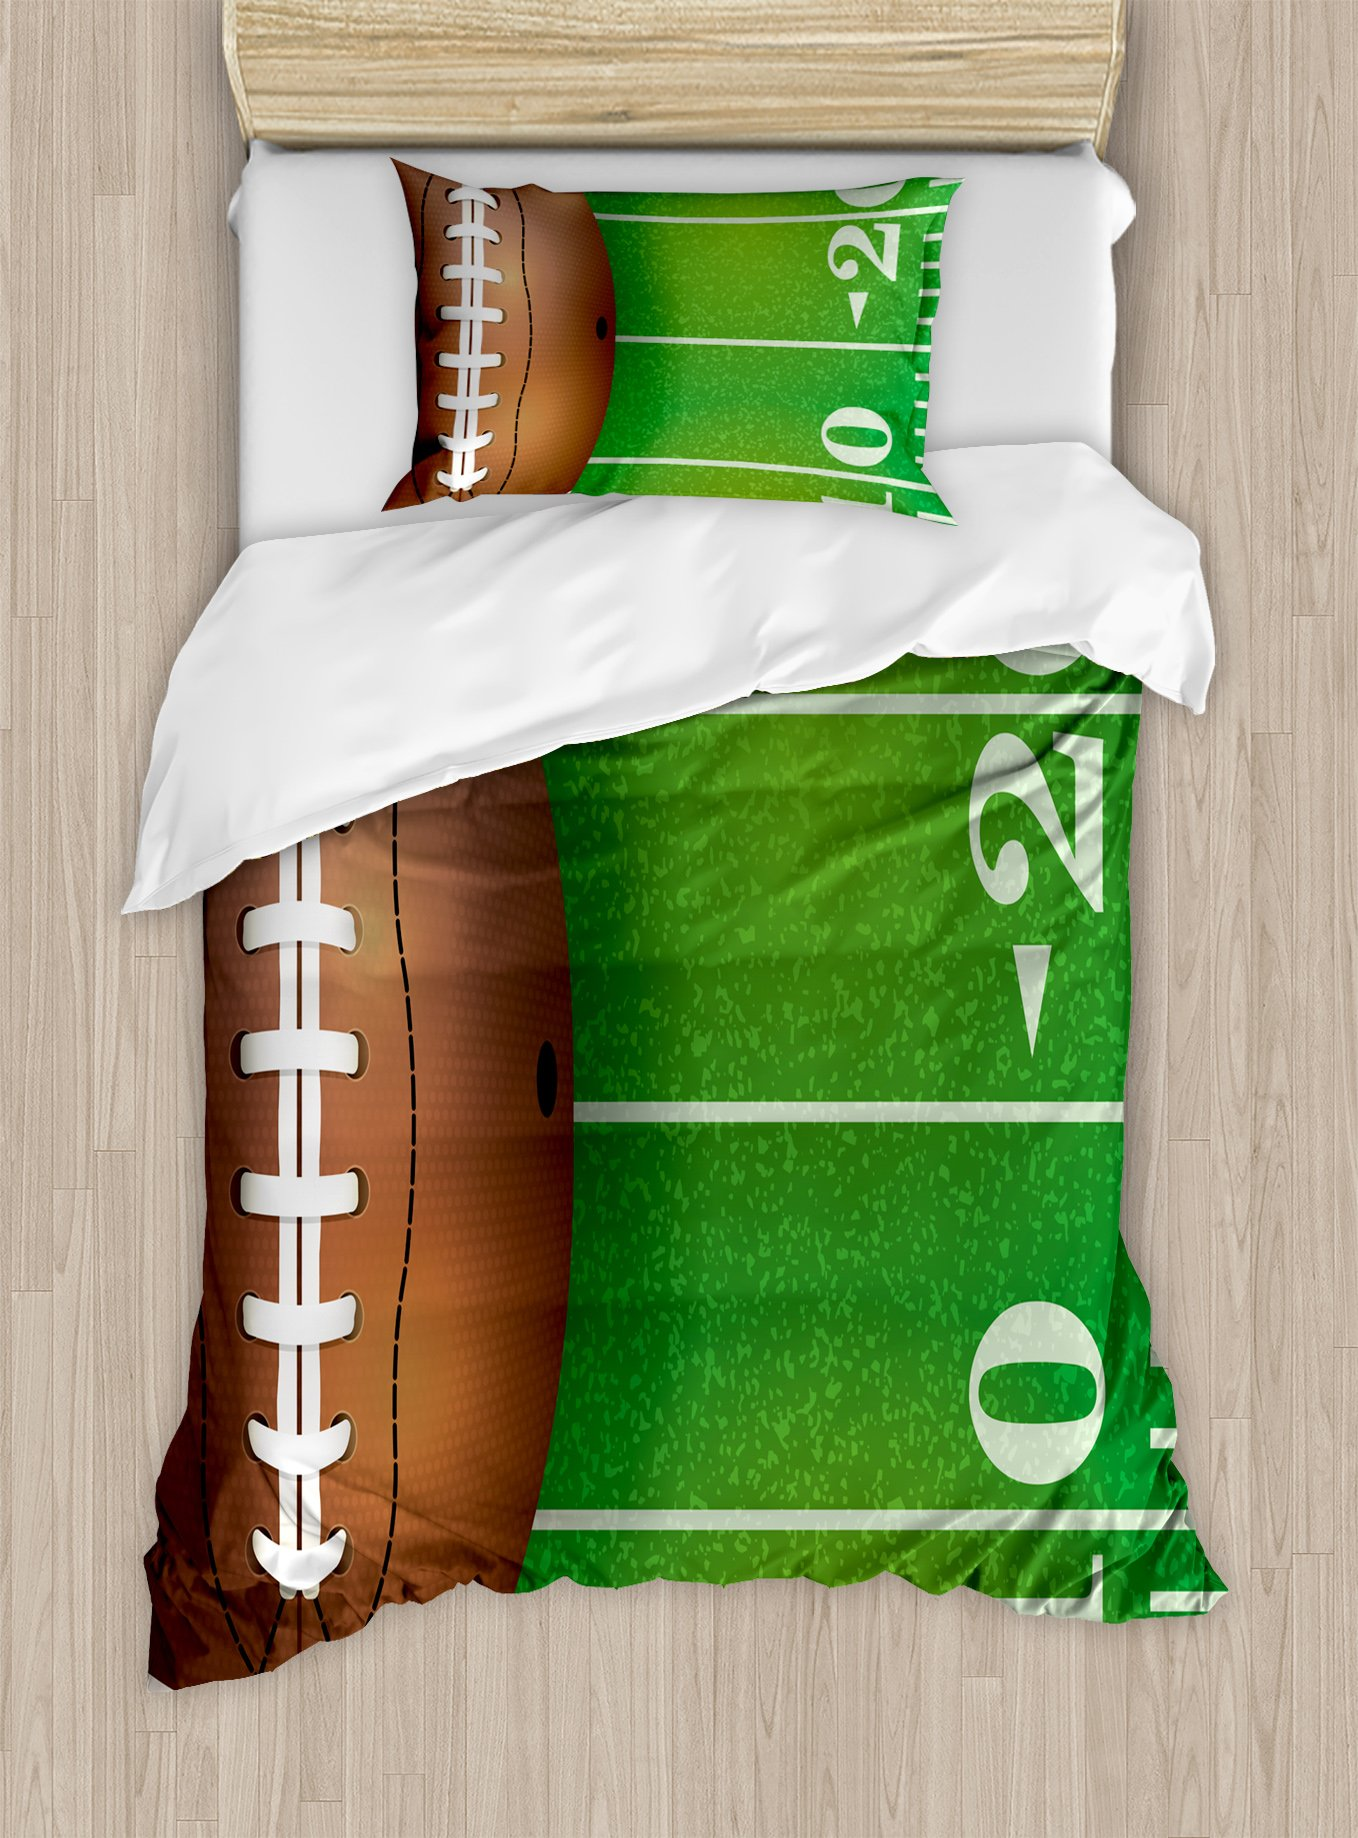 Lunarable Boy's Room Duvet Cover Set Twin Size, American Football Field and Ball Realistic Vivid Illustration College, Decorative 2 Piece Bedding Set with 1 Pillow Sham, Green Brown White